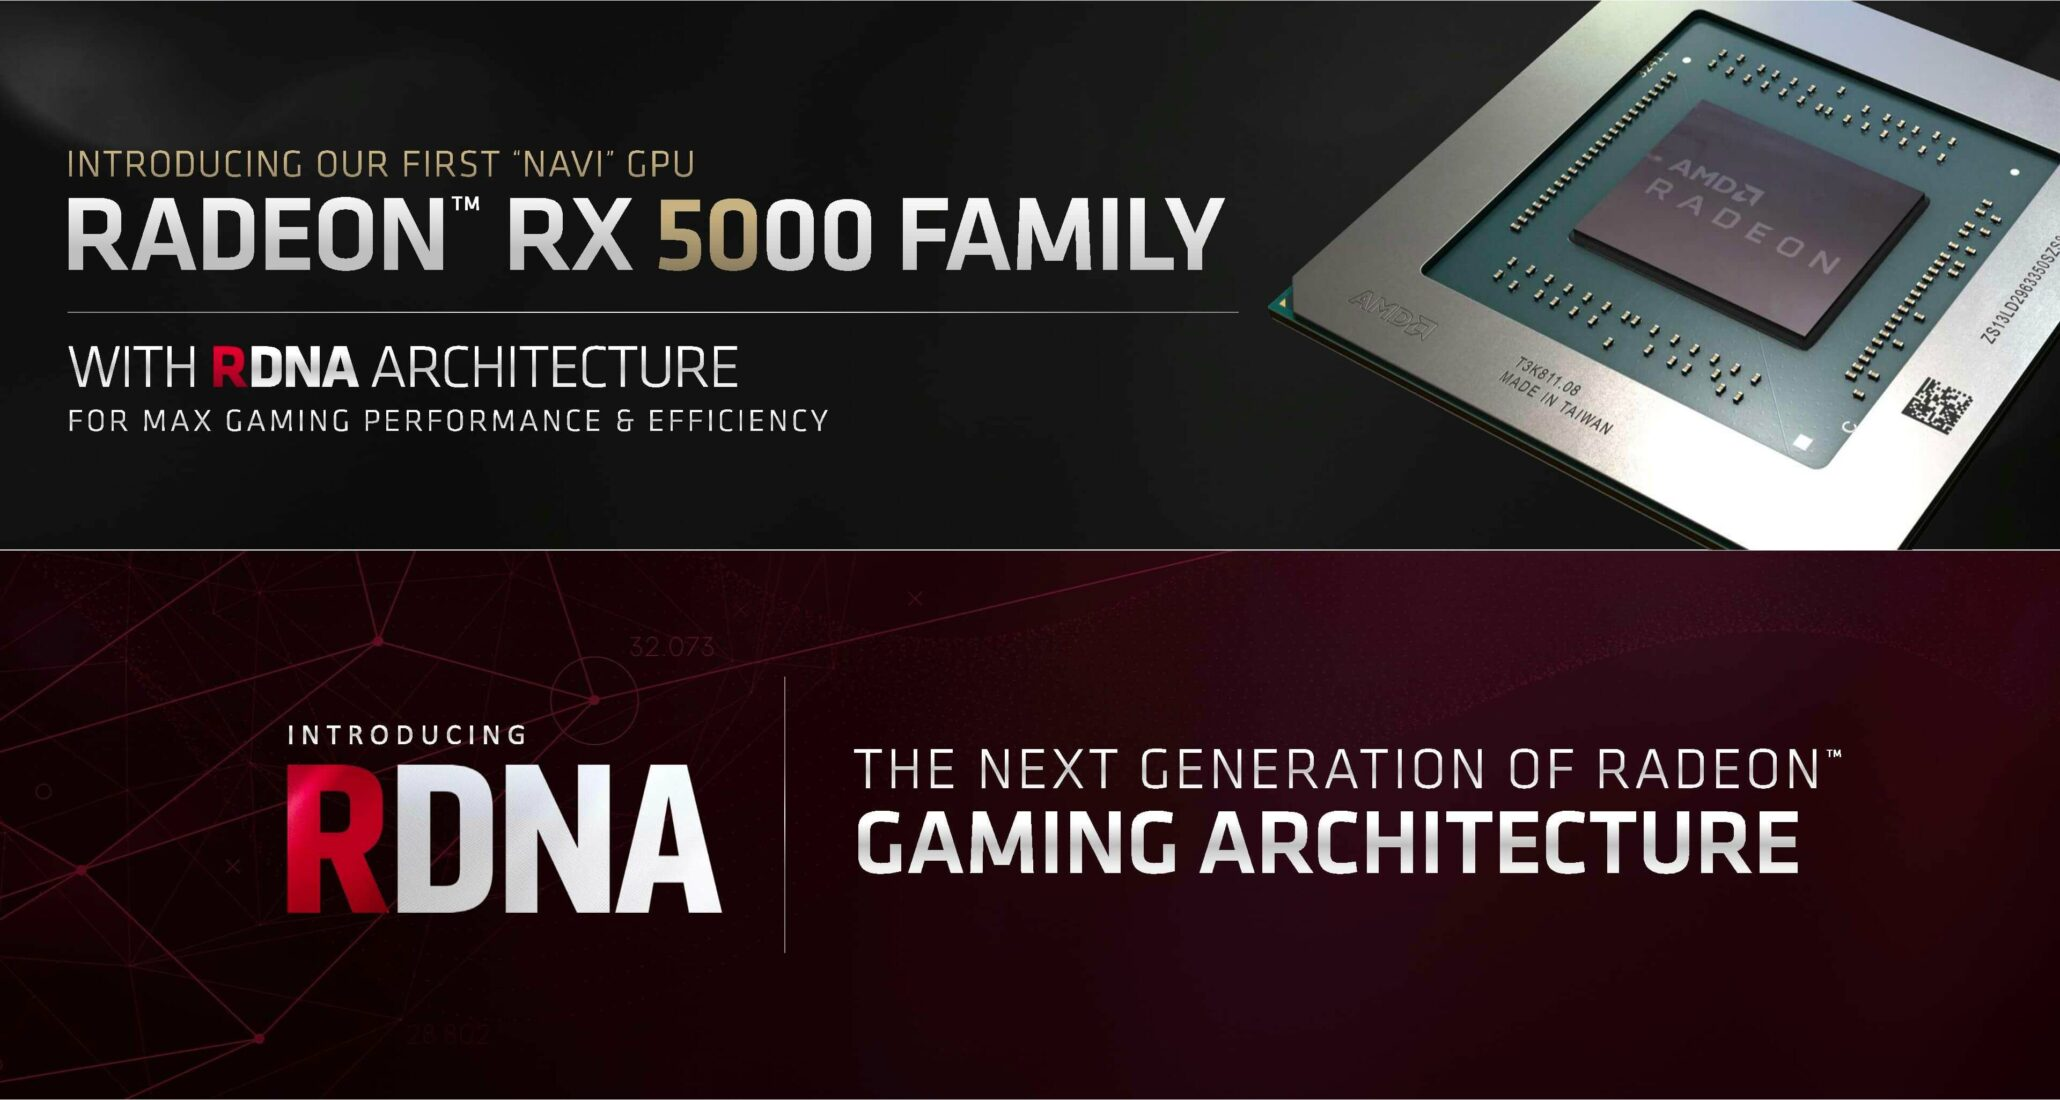 Radeon RX 5700 XT Gaming Performance Leaks - Tackles the RTX